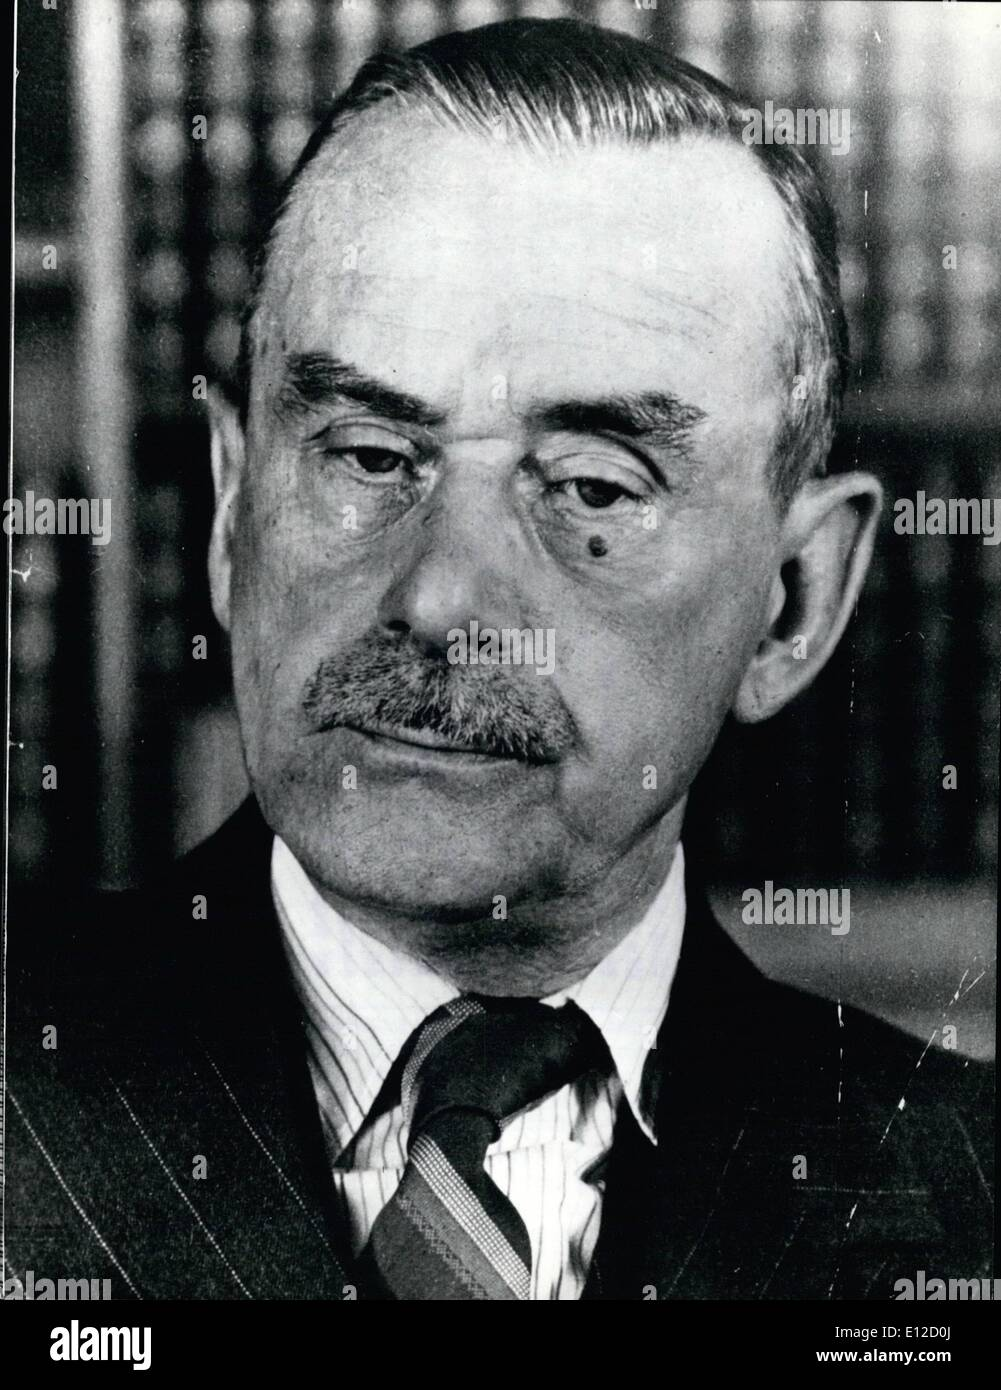 Dec. 14, 2011 - Birthday of Thomas Mann: Hundred years ago, on June 6th, 1875, author Thomas Mann (our picture) was born in Lubeck. mann, decended from an old middle class familly of Lubeck, became the leading intellectual representative of the middle classes of that time and was the initiator of modern style novel in Germany. His first successful work, 'Buddenbrooks', was published in 1901. In this novel Thomas Mann deals with the decline of middle classes and of health, as he did in many of his following stories and novels. ''Der Zauberberg'' (The magic mountain, ''Lotte in Weimar'', ''Dr - Stock Image